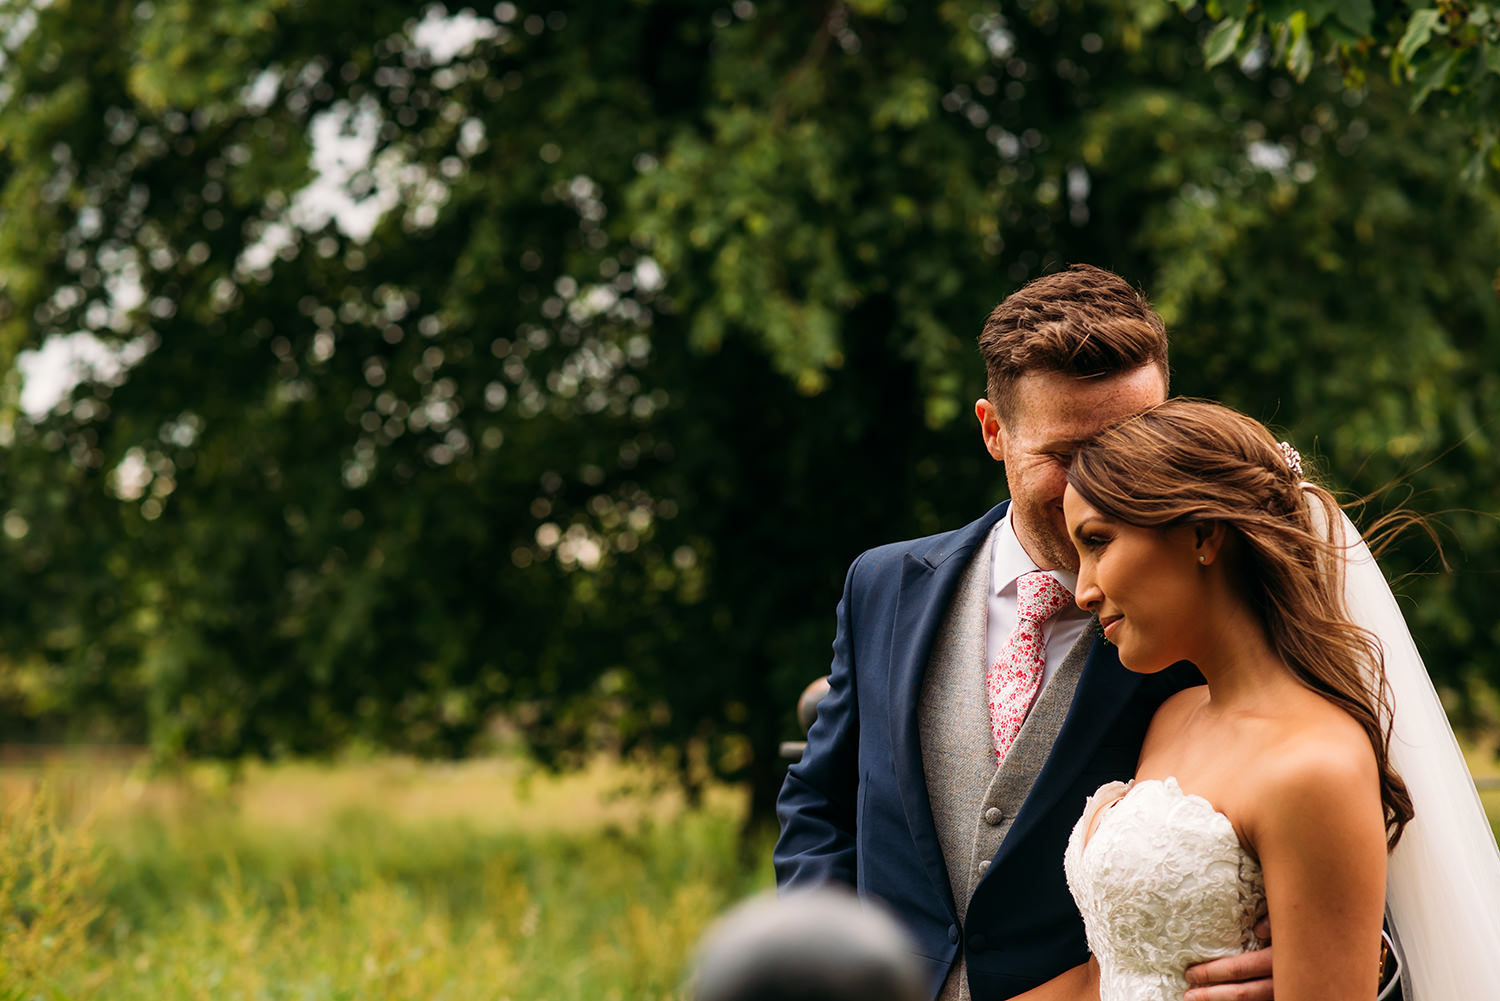 colour photo, bride and groom in field